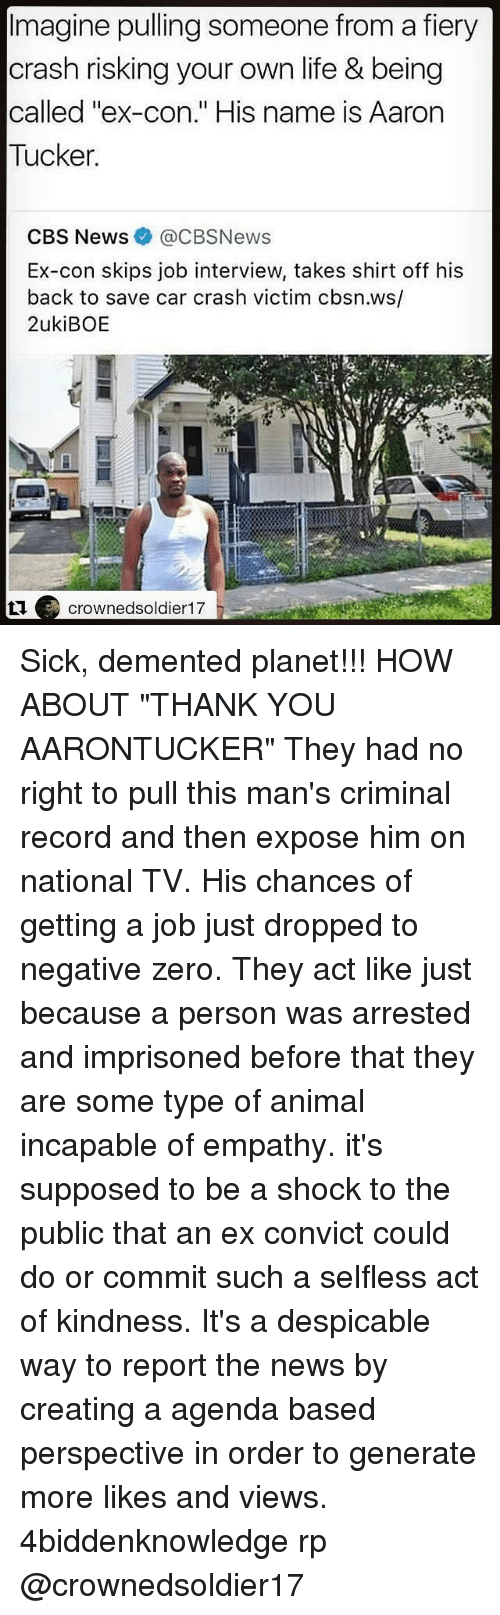 "Jobbing: Imagine pulling someone from a fiery  crash risking your own life & being  called ""ex-con."" His name is Aarorn  Tucker  CBS News@CBSNews  Ex-con skips job interview, takes shirt off his  back to save car crash victim cbsn.ws/  2ukiBOE  crownedsoldier17 Sick, demented planet!!! HOW ABOUT ""THANK YOU AARONTUCKER"" They had no right to pull this man's criminal record and then expose him on national TV. His chances of getting a job just dropped to negative zero. They act like just because a person was arrested and imprisoned before that they are some type of animal incapable of empathy. it's supposed to be a shock to the public that an ex convict could do or commit such a selfless act of kindness. It's a despicable way to report the news by creating a agenda based perspective in order to generate more likes and views. 4biddenknowledge rp @crownedsoldier17"